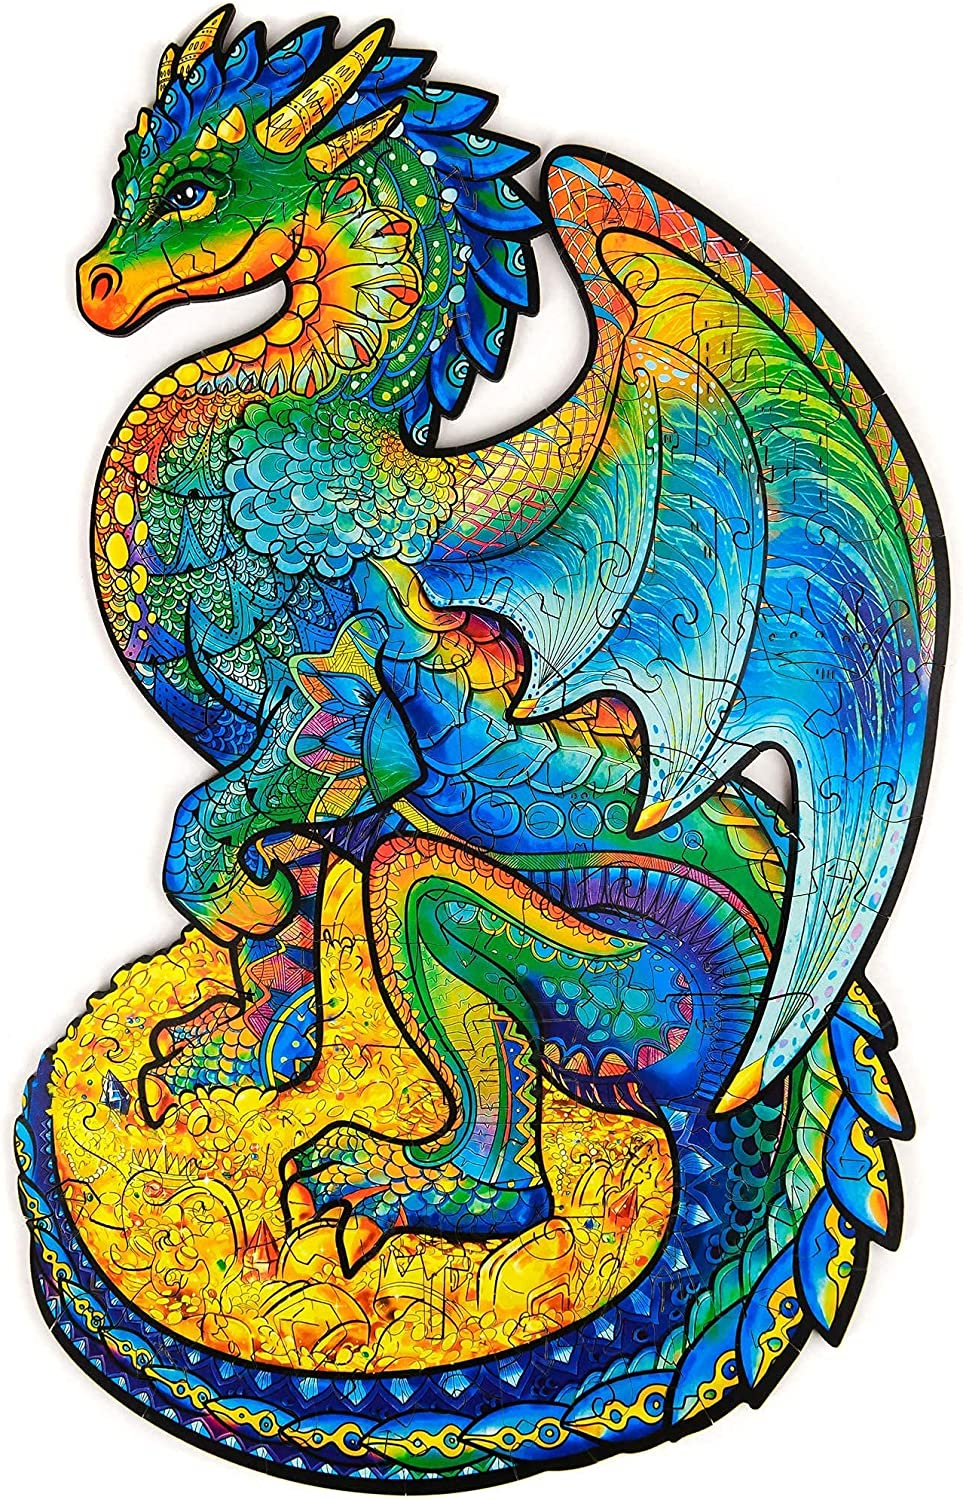 Unidragon Wooden Puzzle Jigsaw, Best Gift for Adults and Kids, Unique Shape Jigsaw Pieces Guarding Dragon, 6.2 х 10.3 in (16 х 26 cm) 97 pcs, Small